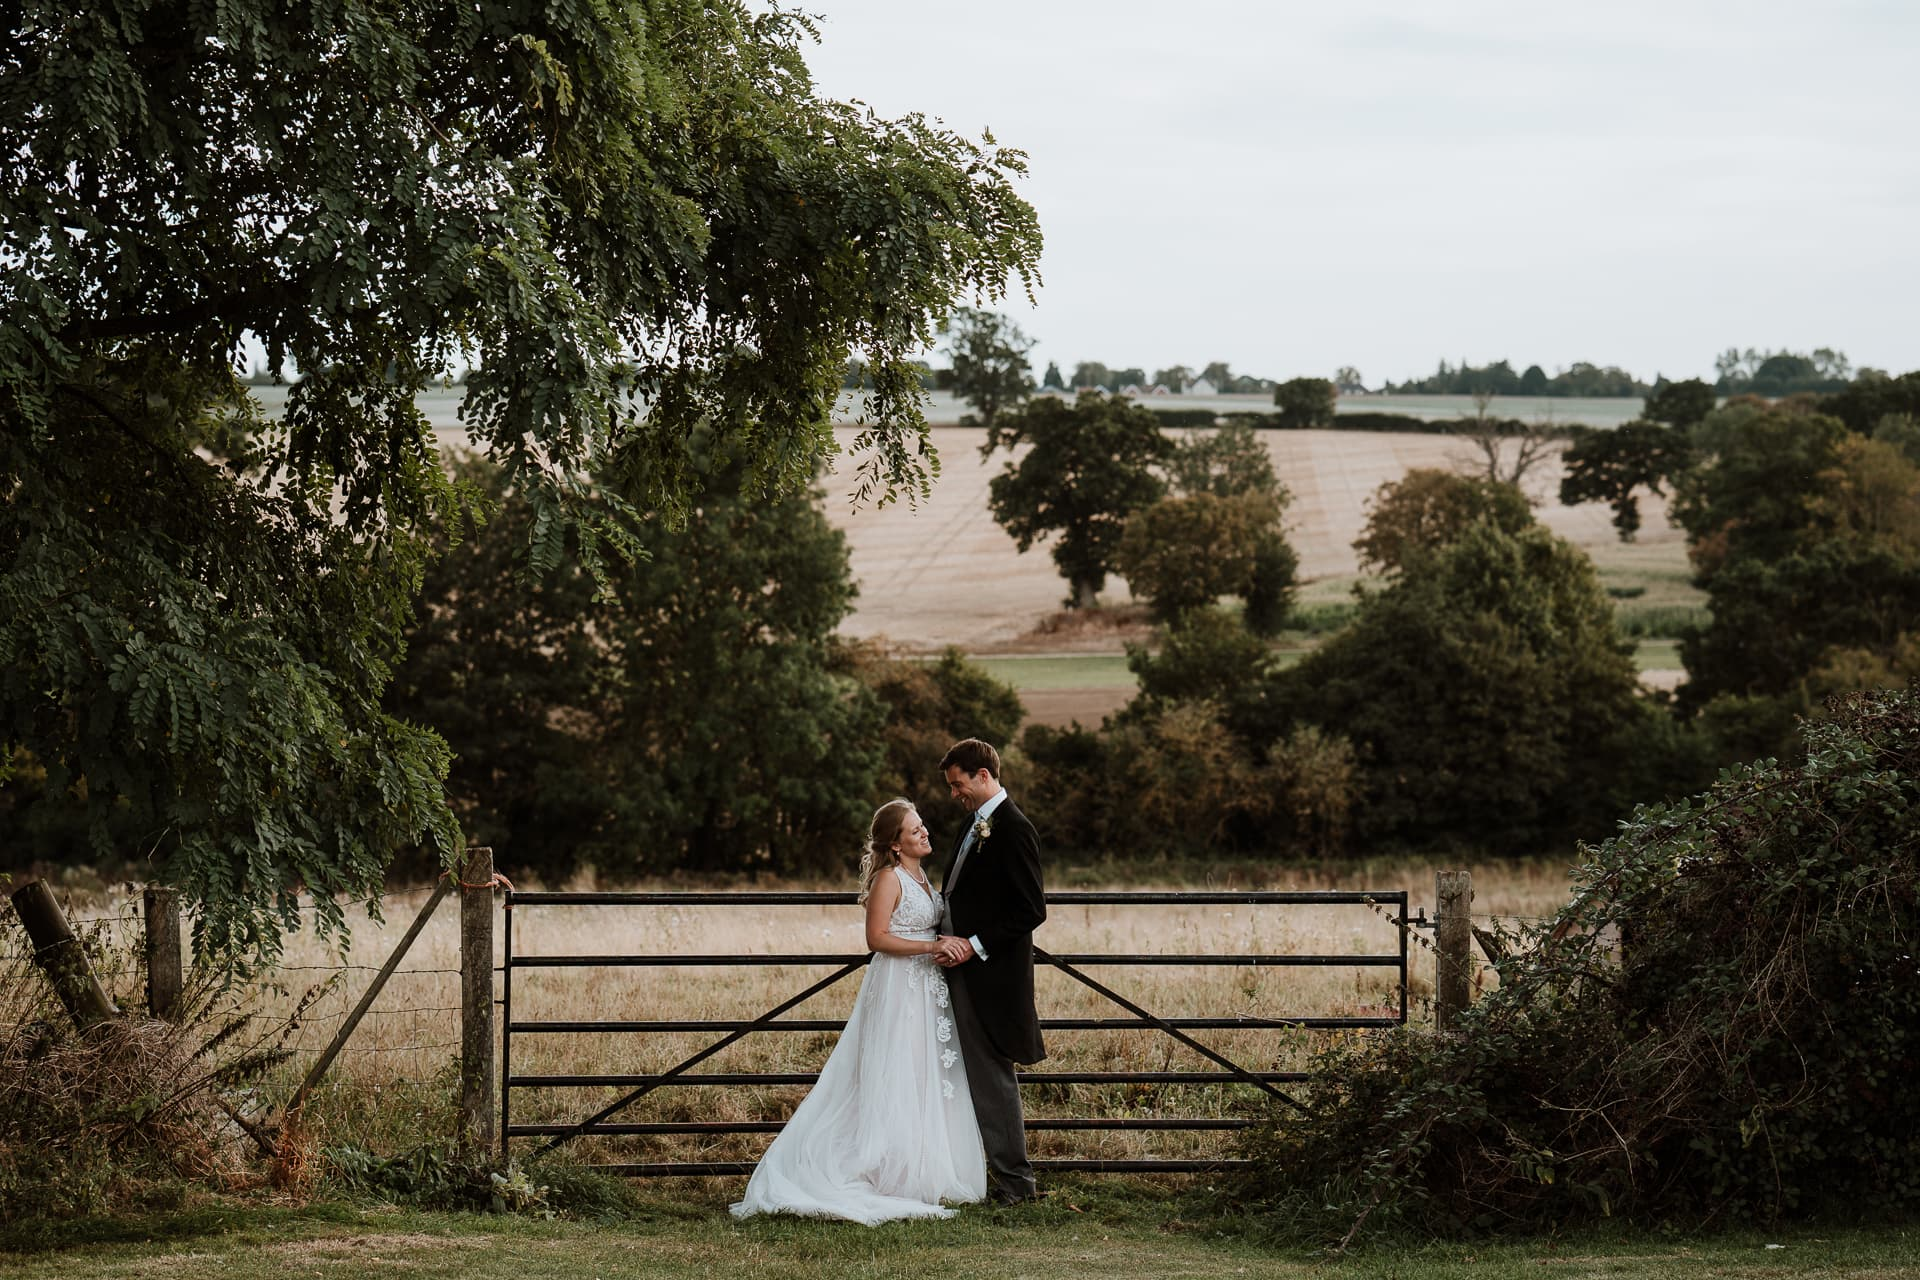 Bride and Groom at farm gate